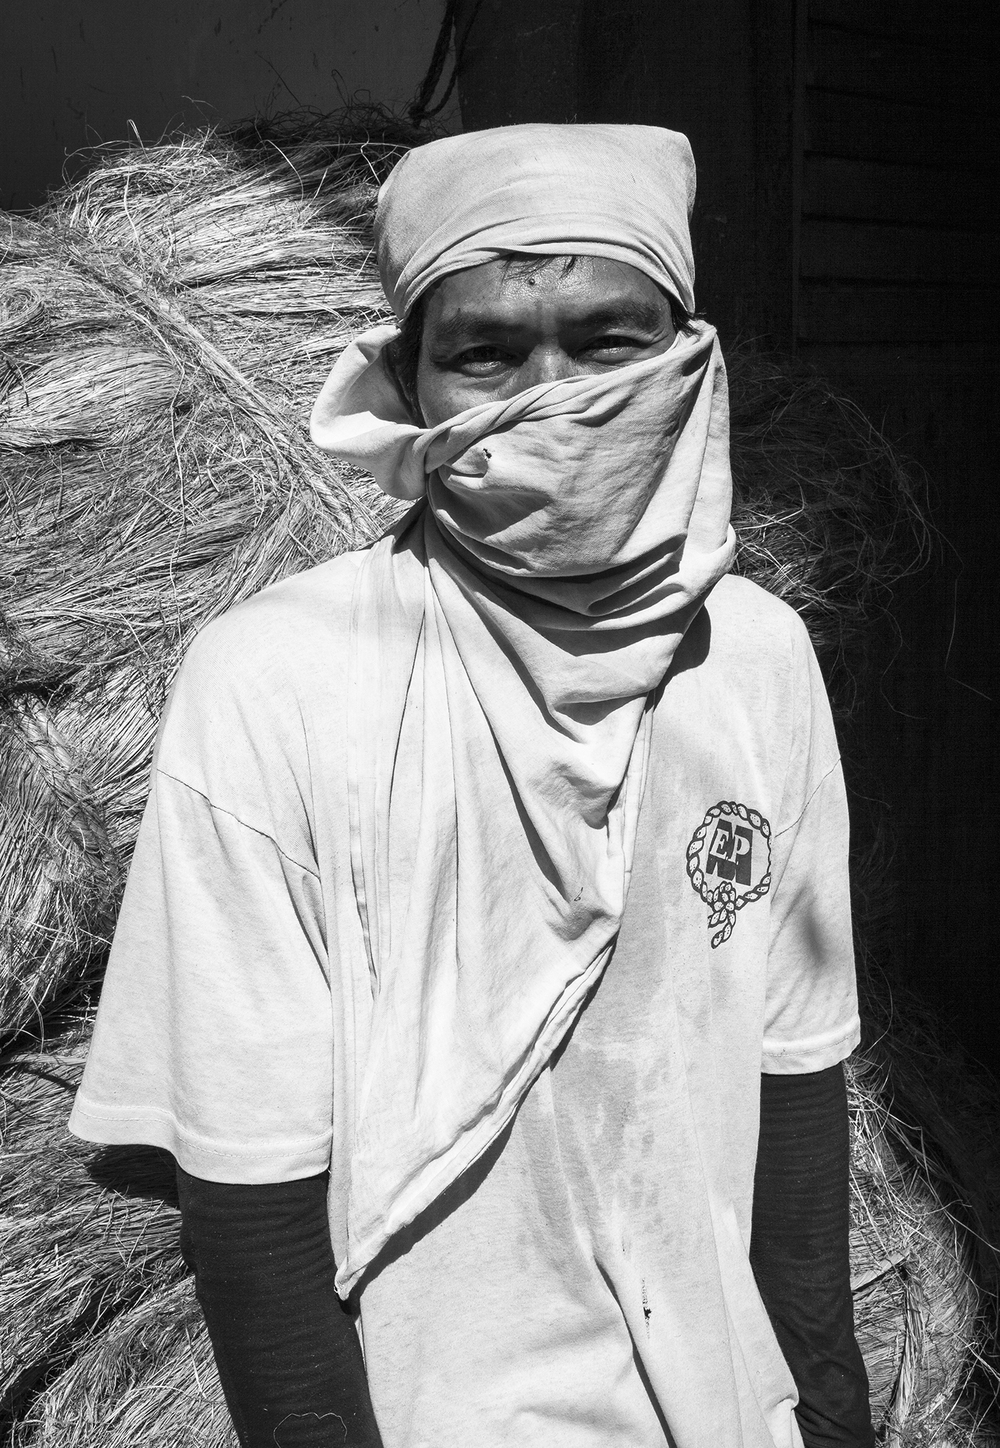 ©_Mark_Maio_Hemp_Worker_Phillipines.jpg